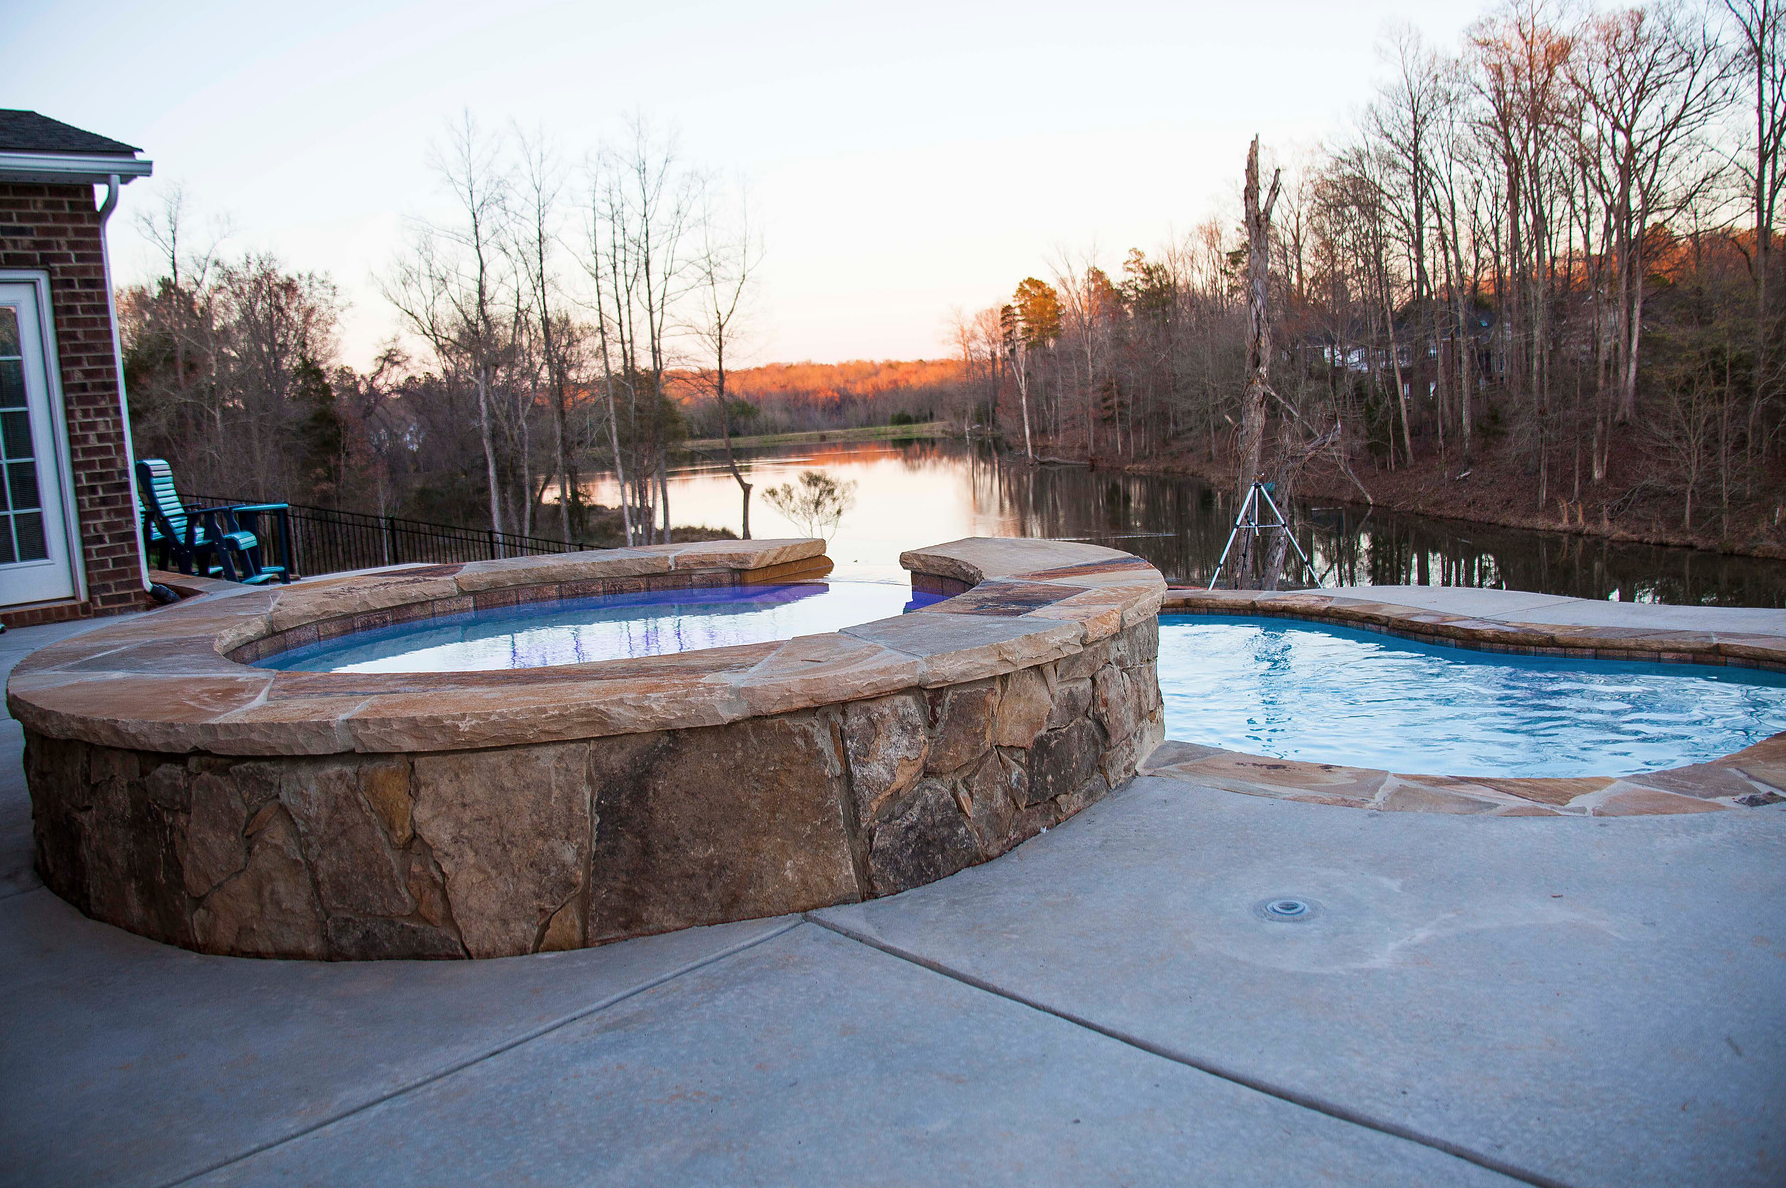 Vinyl Liner Pools Vs Concrete Swimming Pools, Which Is A Better Pool?